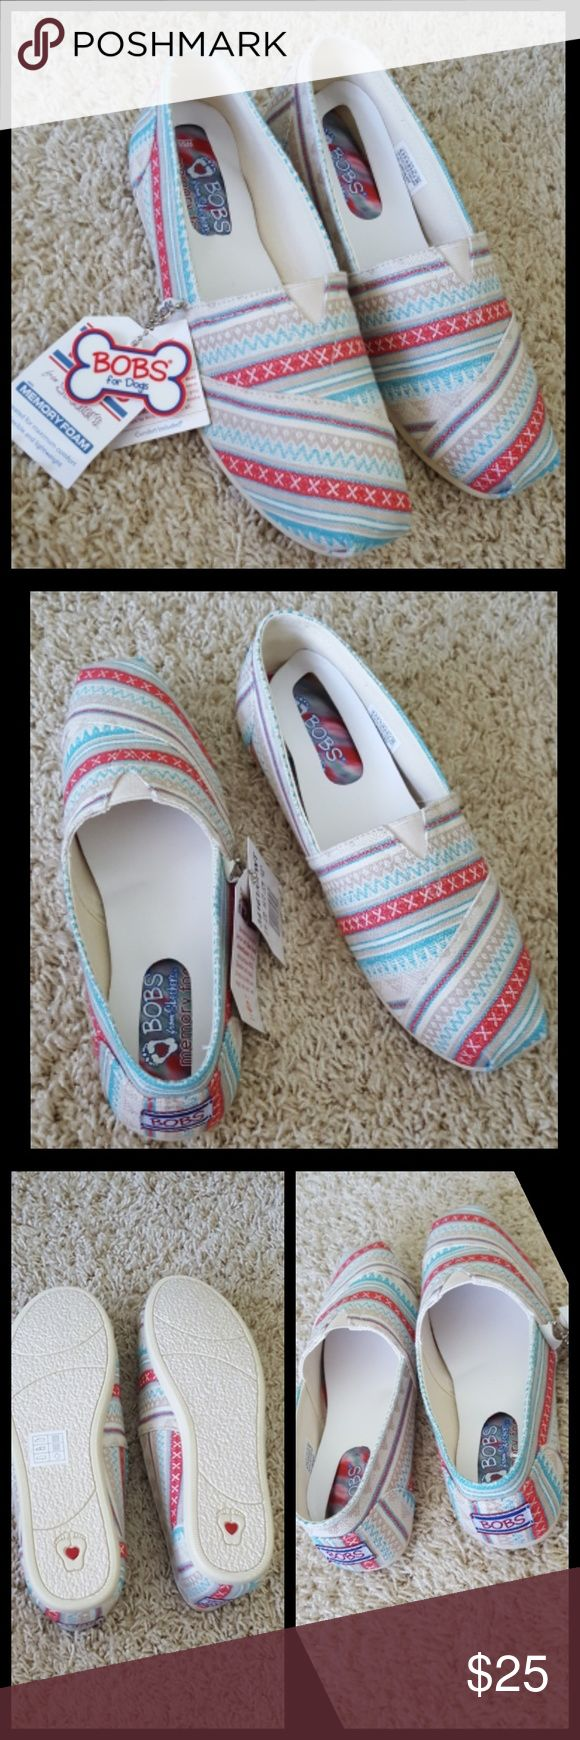 "New Bobs Skechers New with tags  Plush Lil Fox Alpargata Off White Bobs from Skechers  Memory Foam, flexible and lightweight.  Off White, tan, red and aqua colors Comes with ""Bobs for Gogs"" key chain. No Trades  No Modeling  Bundle and save Bobs  Shoes Flats & Loafers"